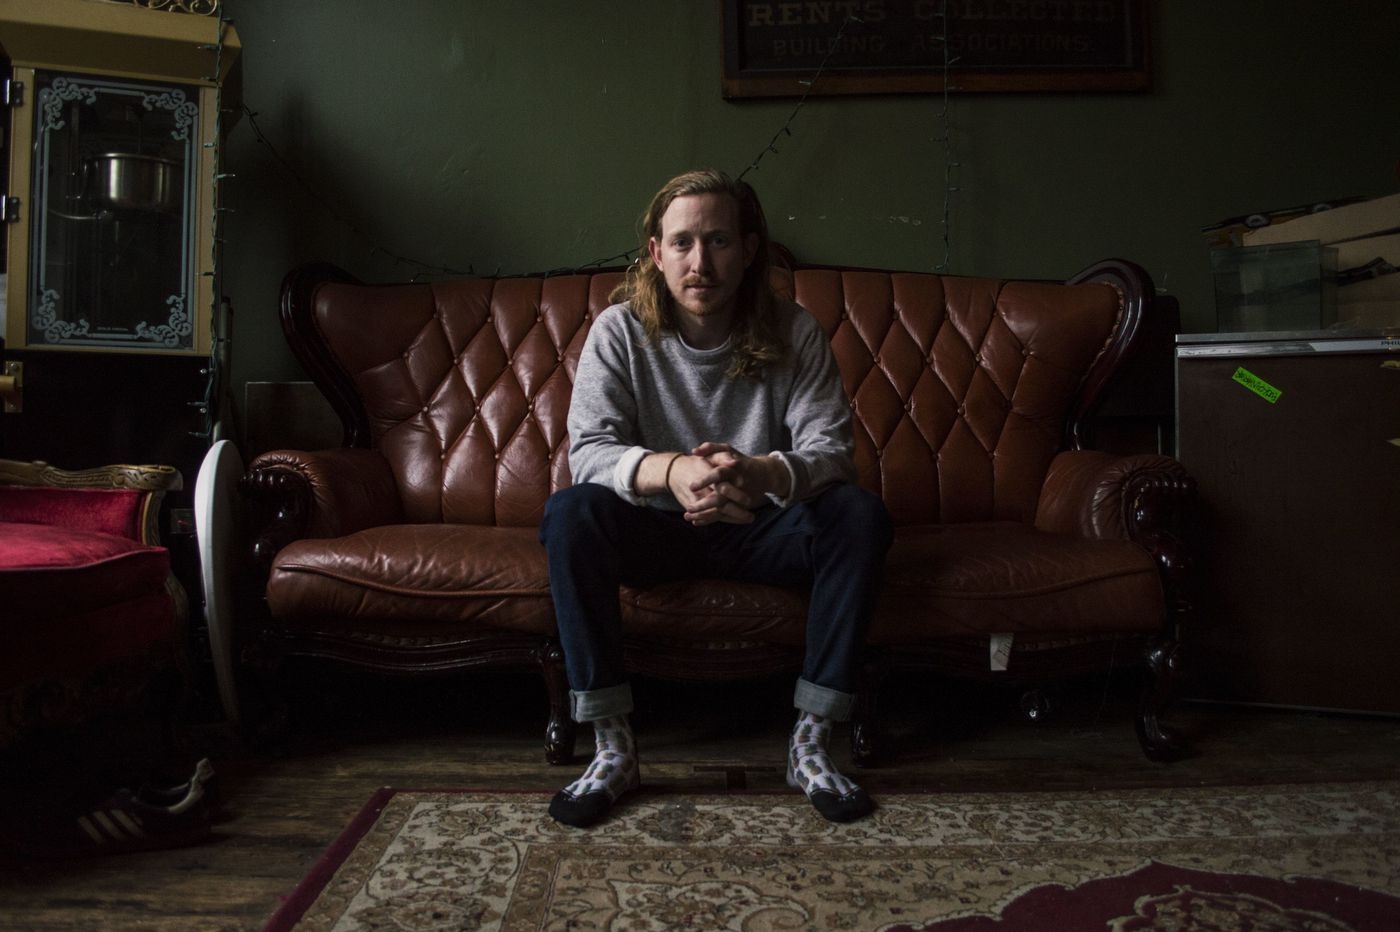 Philly rapper Asher Roth's debut was certified gold 10 years after it was released. He's celebrating with a 4/20 party.